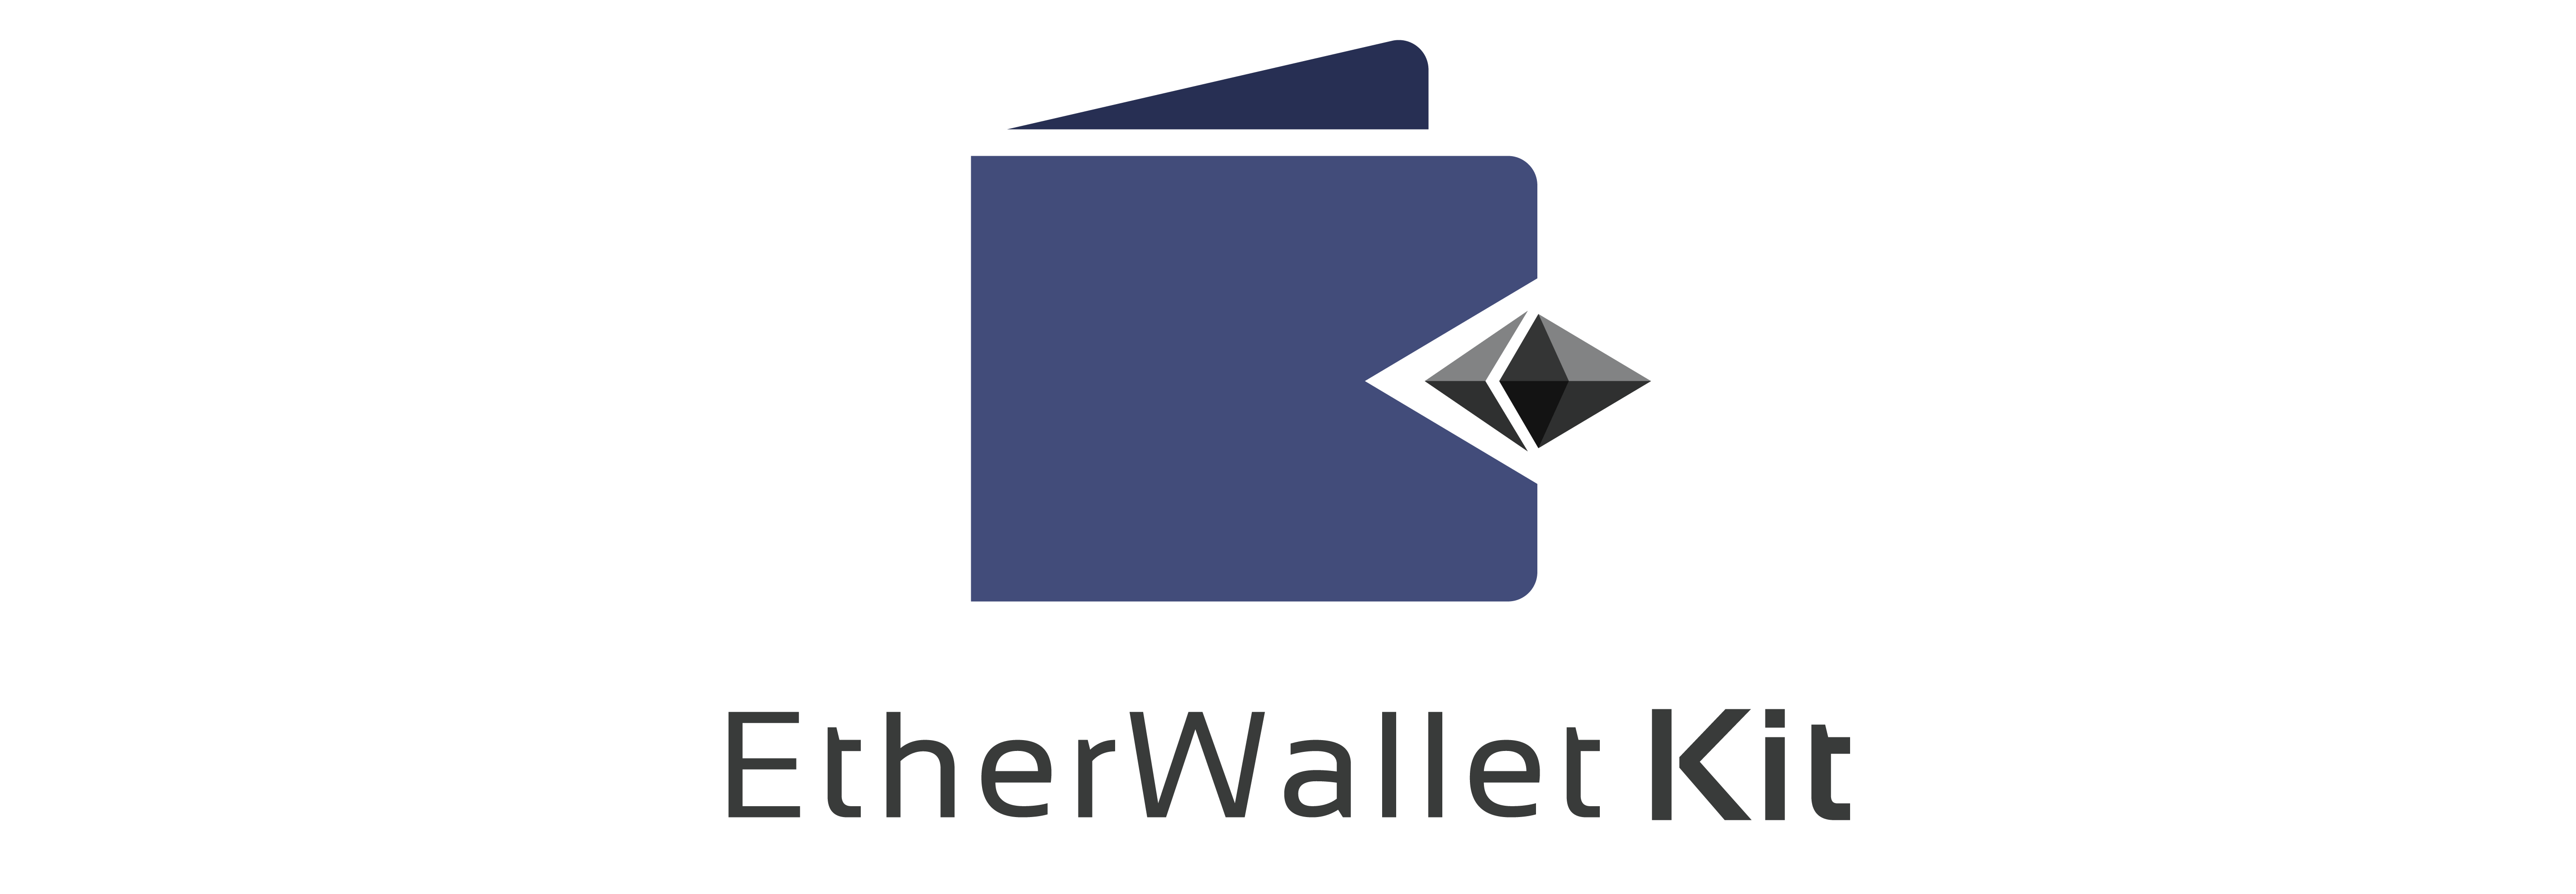 EtherWalletKit